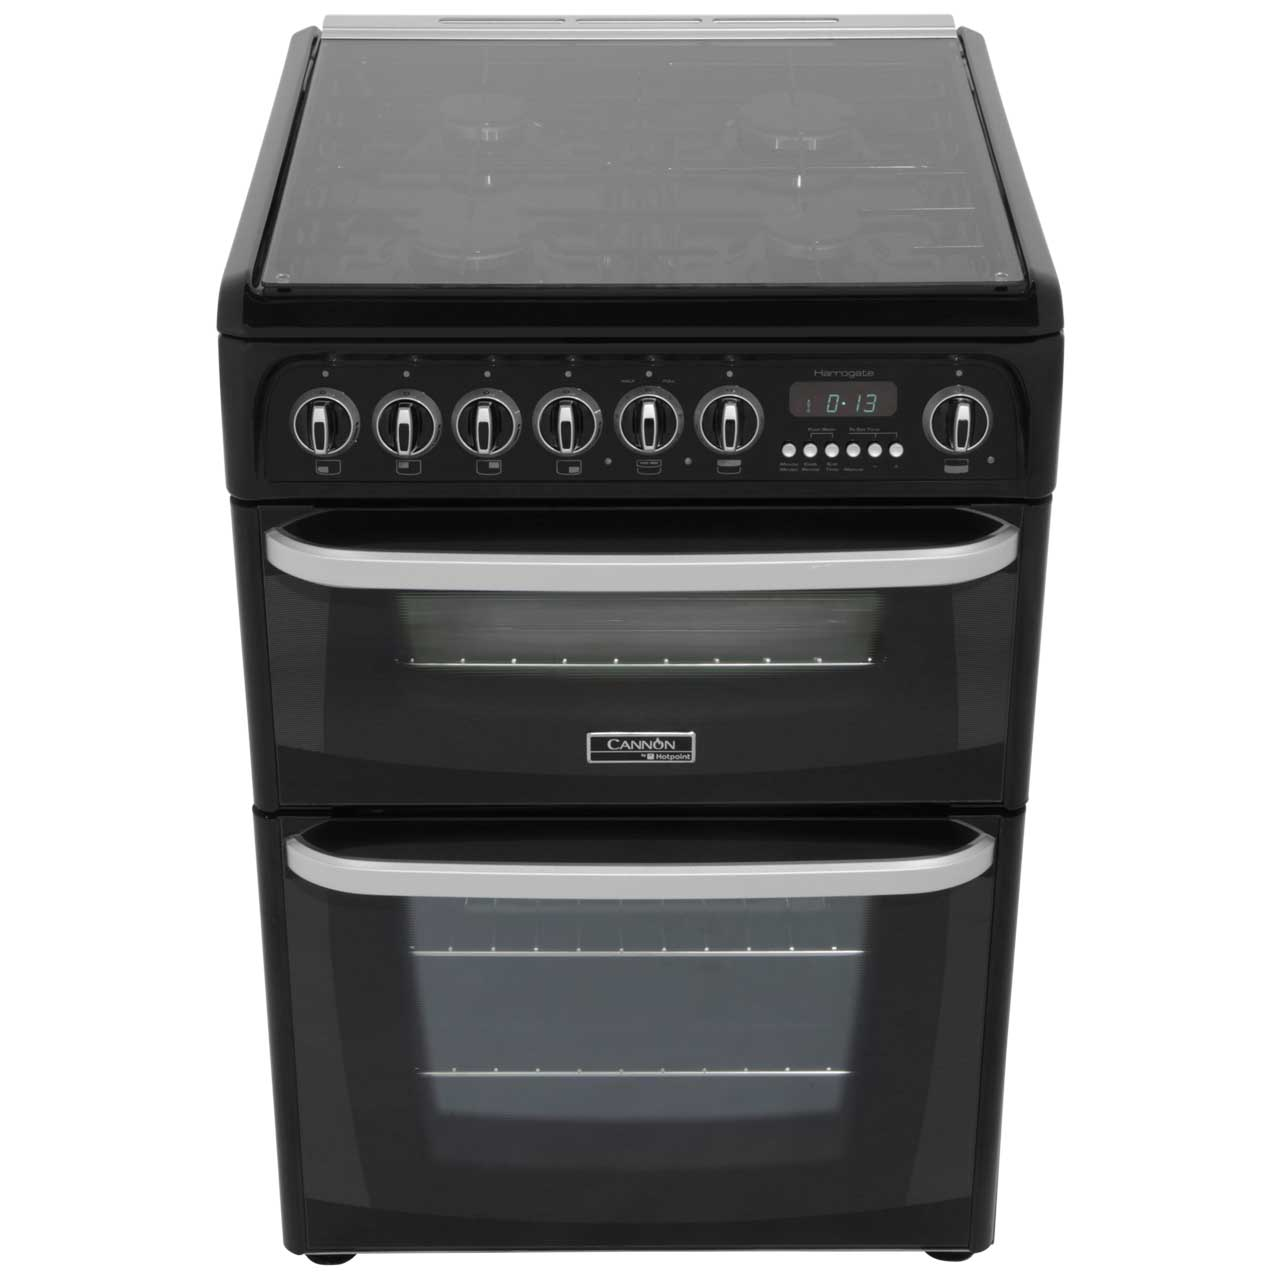 ch60dhwfs wh cannon dual fuel cooker white ao com rh ao com KitchenAid Dual Fuel Double Oven Dual Fuel Grills